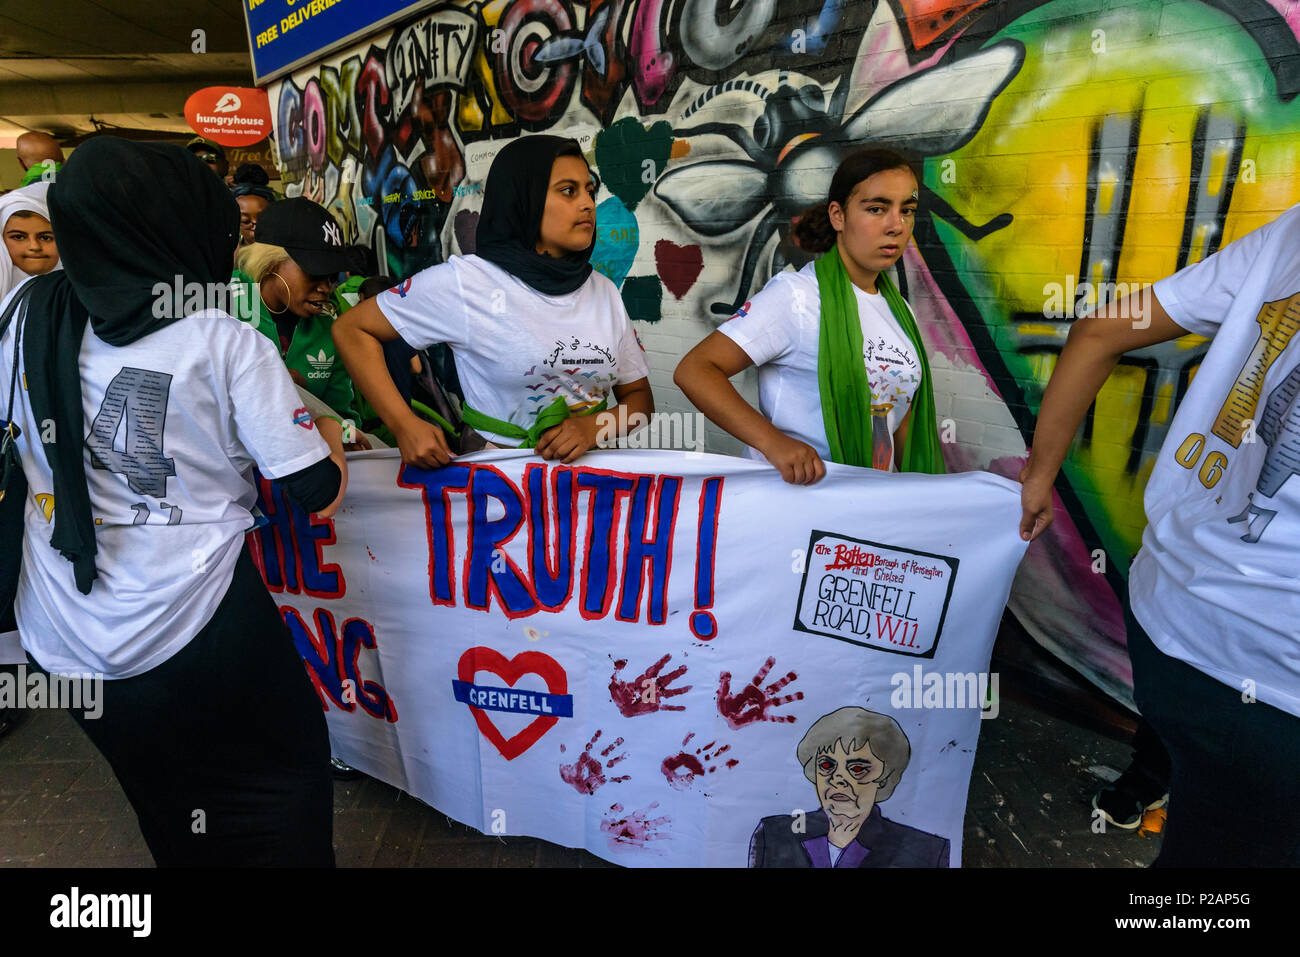 London, UK. 14th June 2018. Grenfell Youth carry their banner under the Westway before thousands walk in silence from close to Grenfell Tower remembering the victims of the disaster on the first anniversary of the disastrous fire which killed 72 and left survivors traumatised. Many of those made homeless by the fire are still in temporary accomodation a year later despite promises mde by Theresa May and Kensington & Chelsea council, who many fell have failed the local community both before and after the fire. Credit: Peter Marshall/Alamy Live News - Stock Image